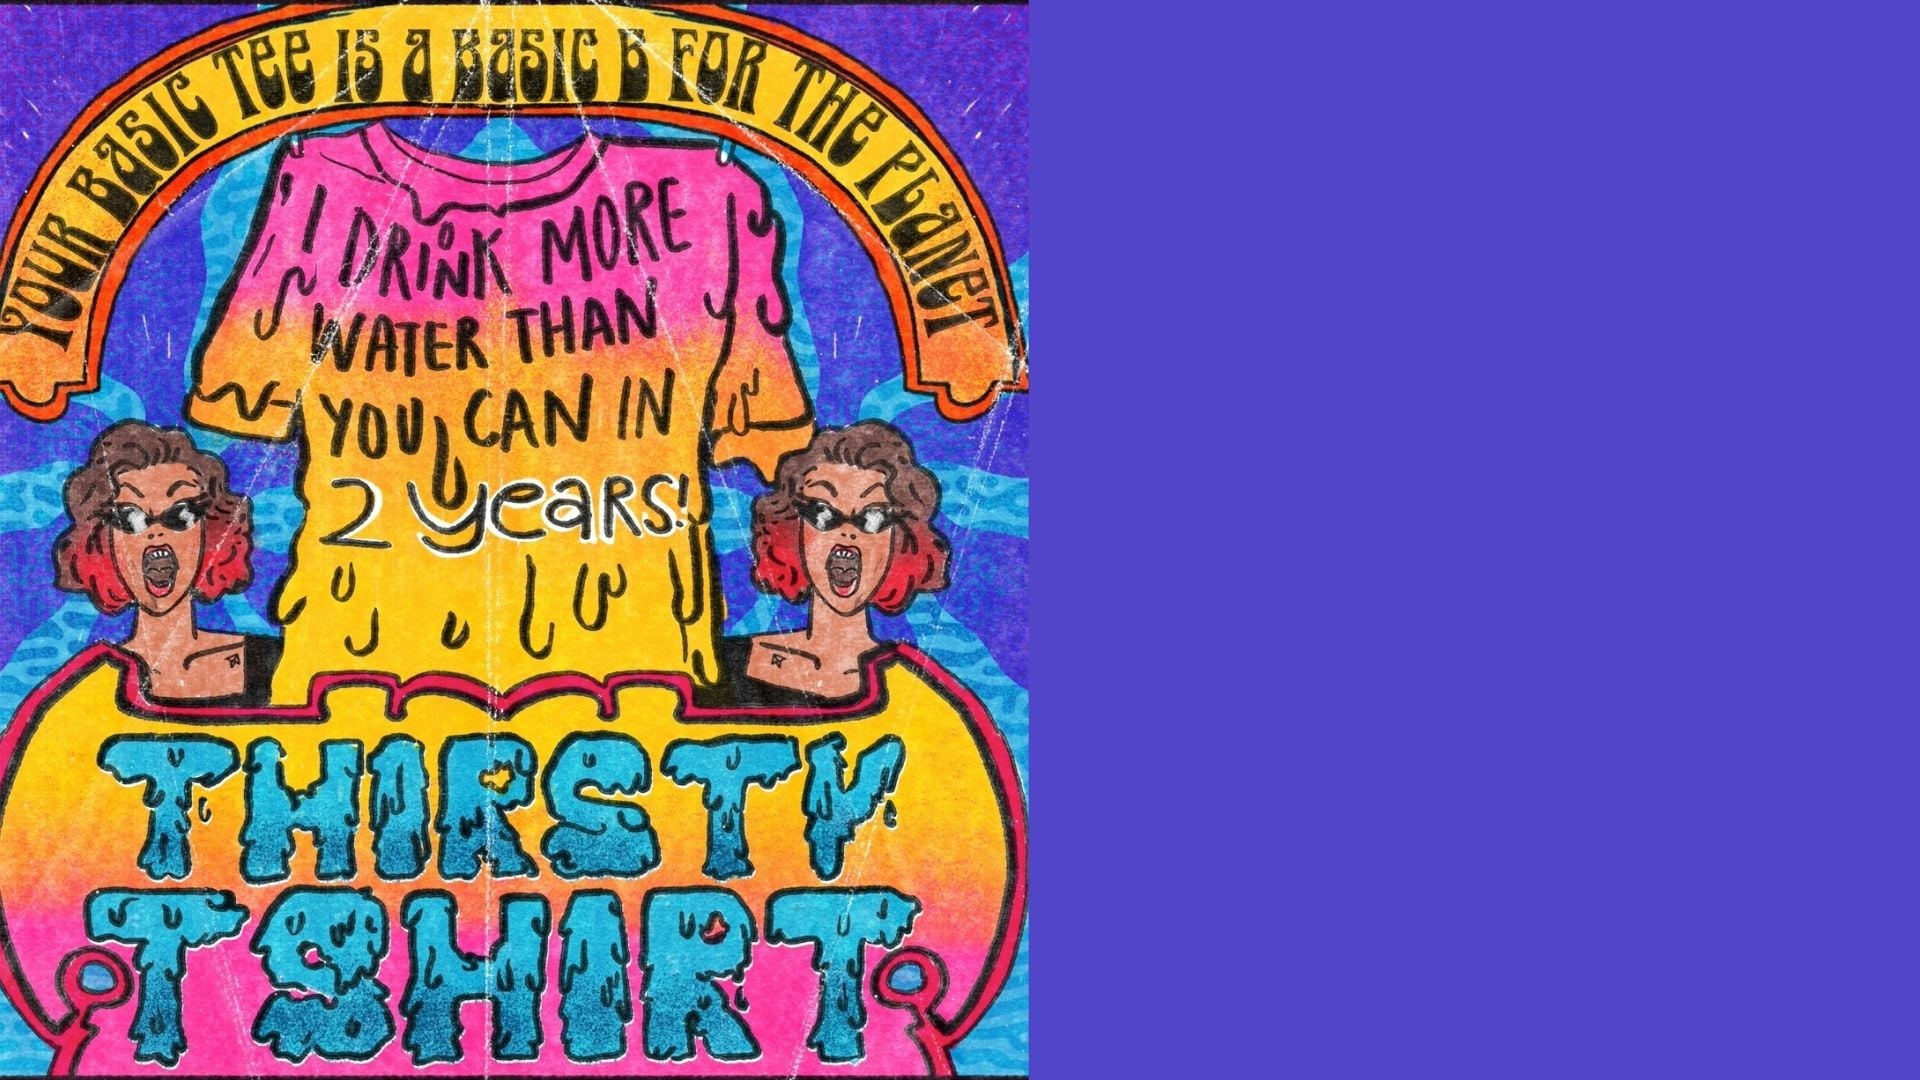 Indian artists design comic strips to raise awareness about water consumption in the fashion industry